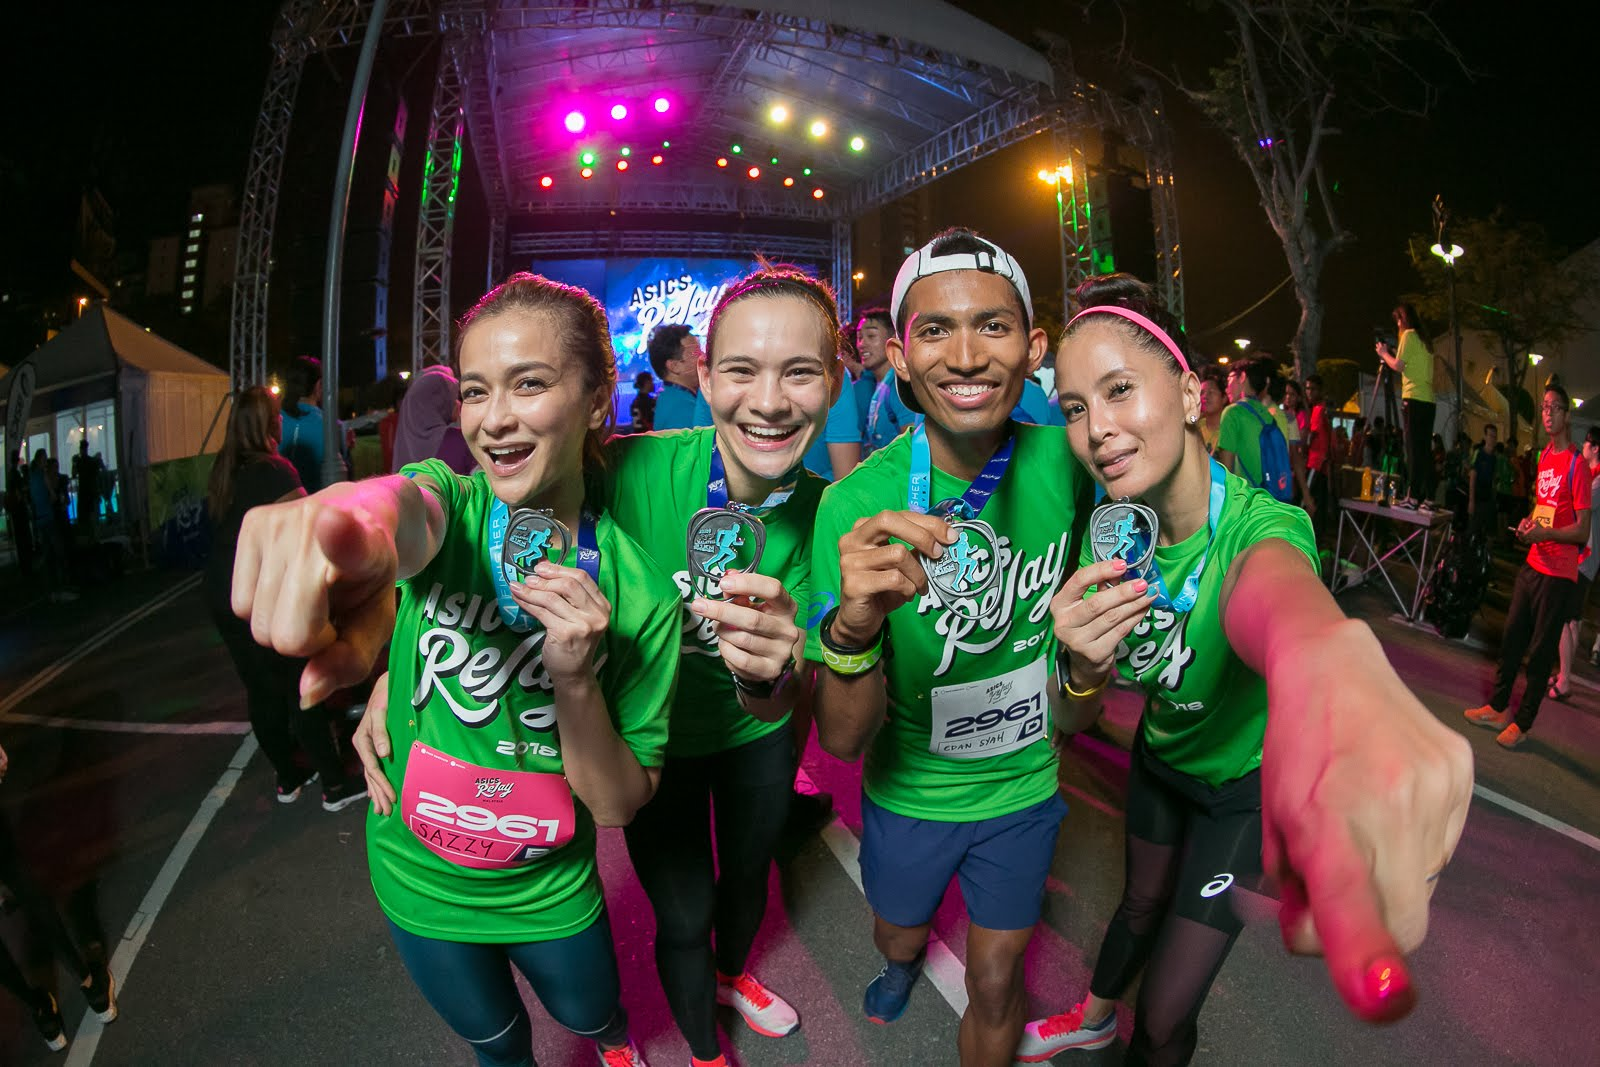 9b84af8738 ASICS Relay Malaysia Attracted More Than 3,000 Runners | Running ...